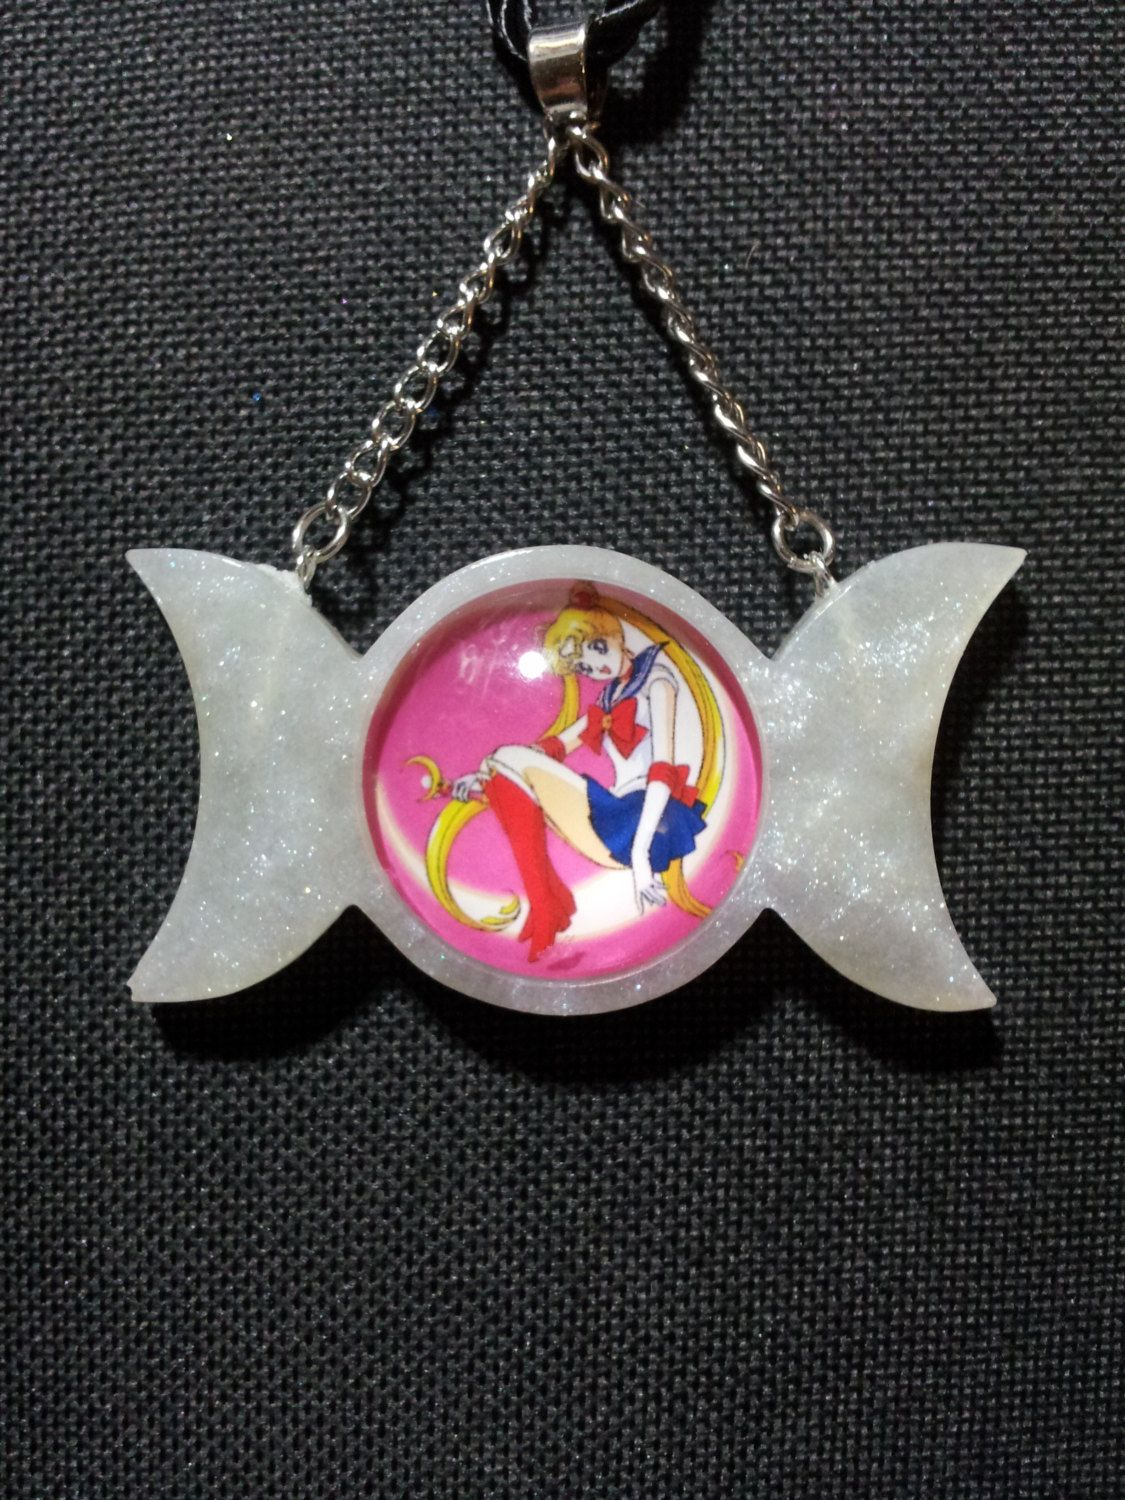 Triple Moon with Girl in White Pearl Resin + Free Shipping Worldwide, Triple Moon Jewelry, Girl sitting on moon, Moon Jewelry, Anime Jewelry by OurArtyCreations on Etsy